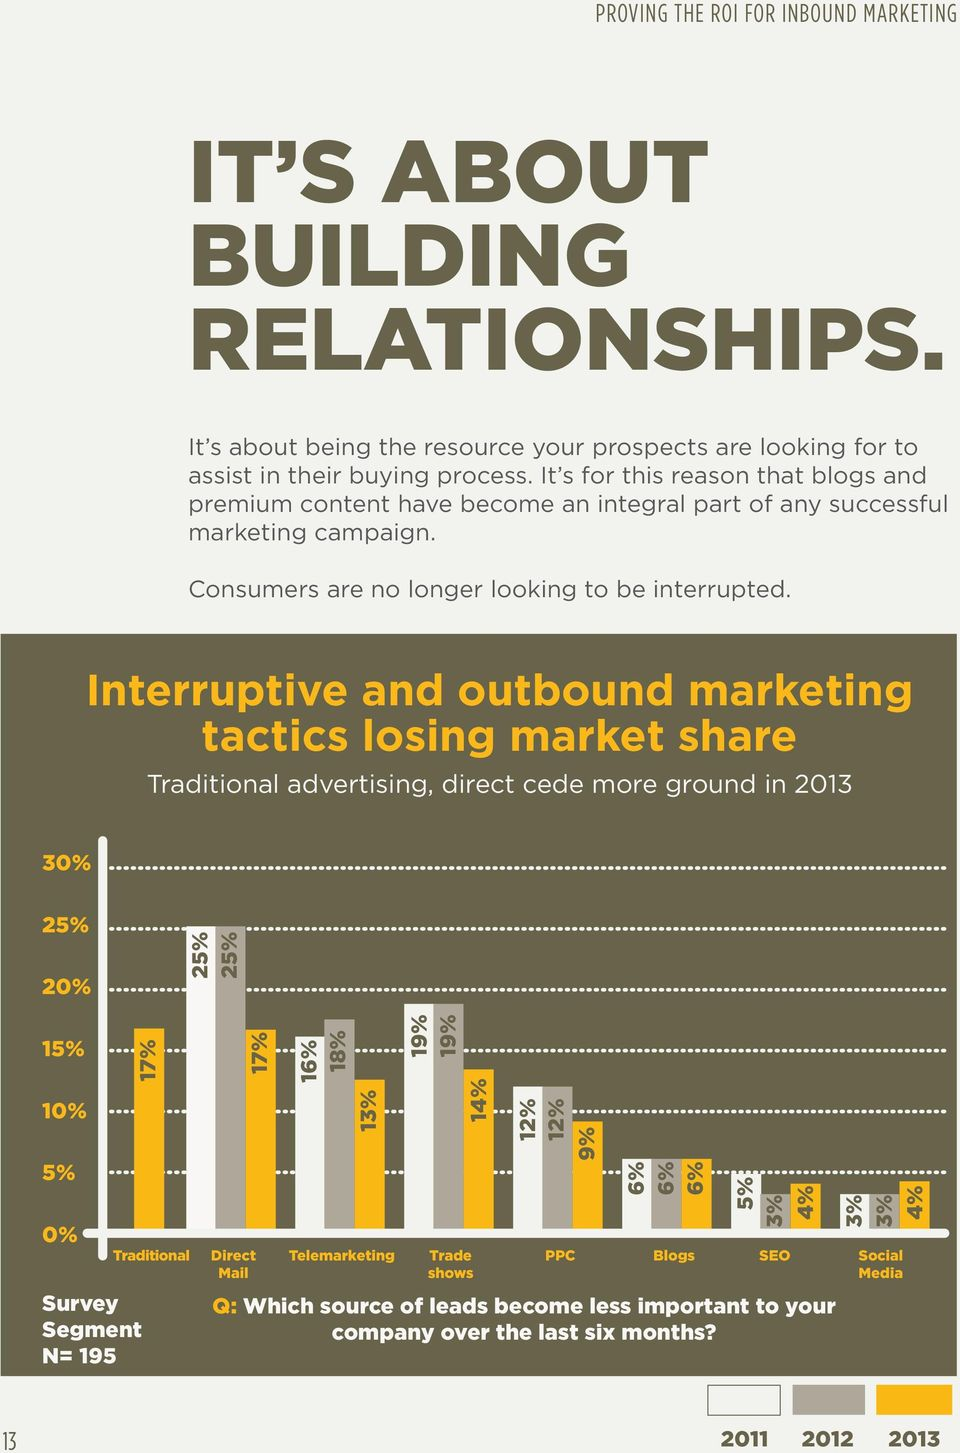 Interruptive and outbound marketing tactics losing market share Traditional advertising, direct cede more ground in 2013 30% 25% 20% 25% 25% 15% 10% 5% 0% 17% Survey Segment N= 195